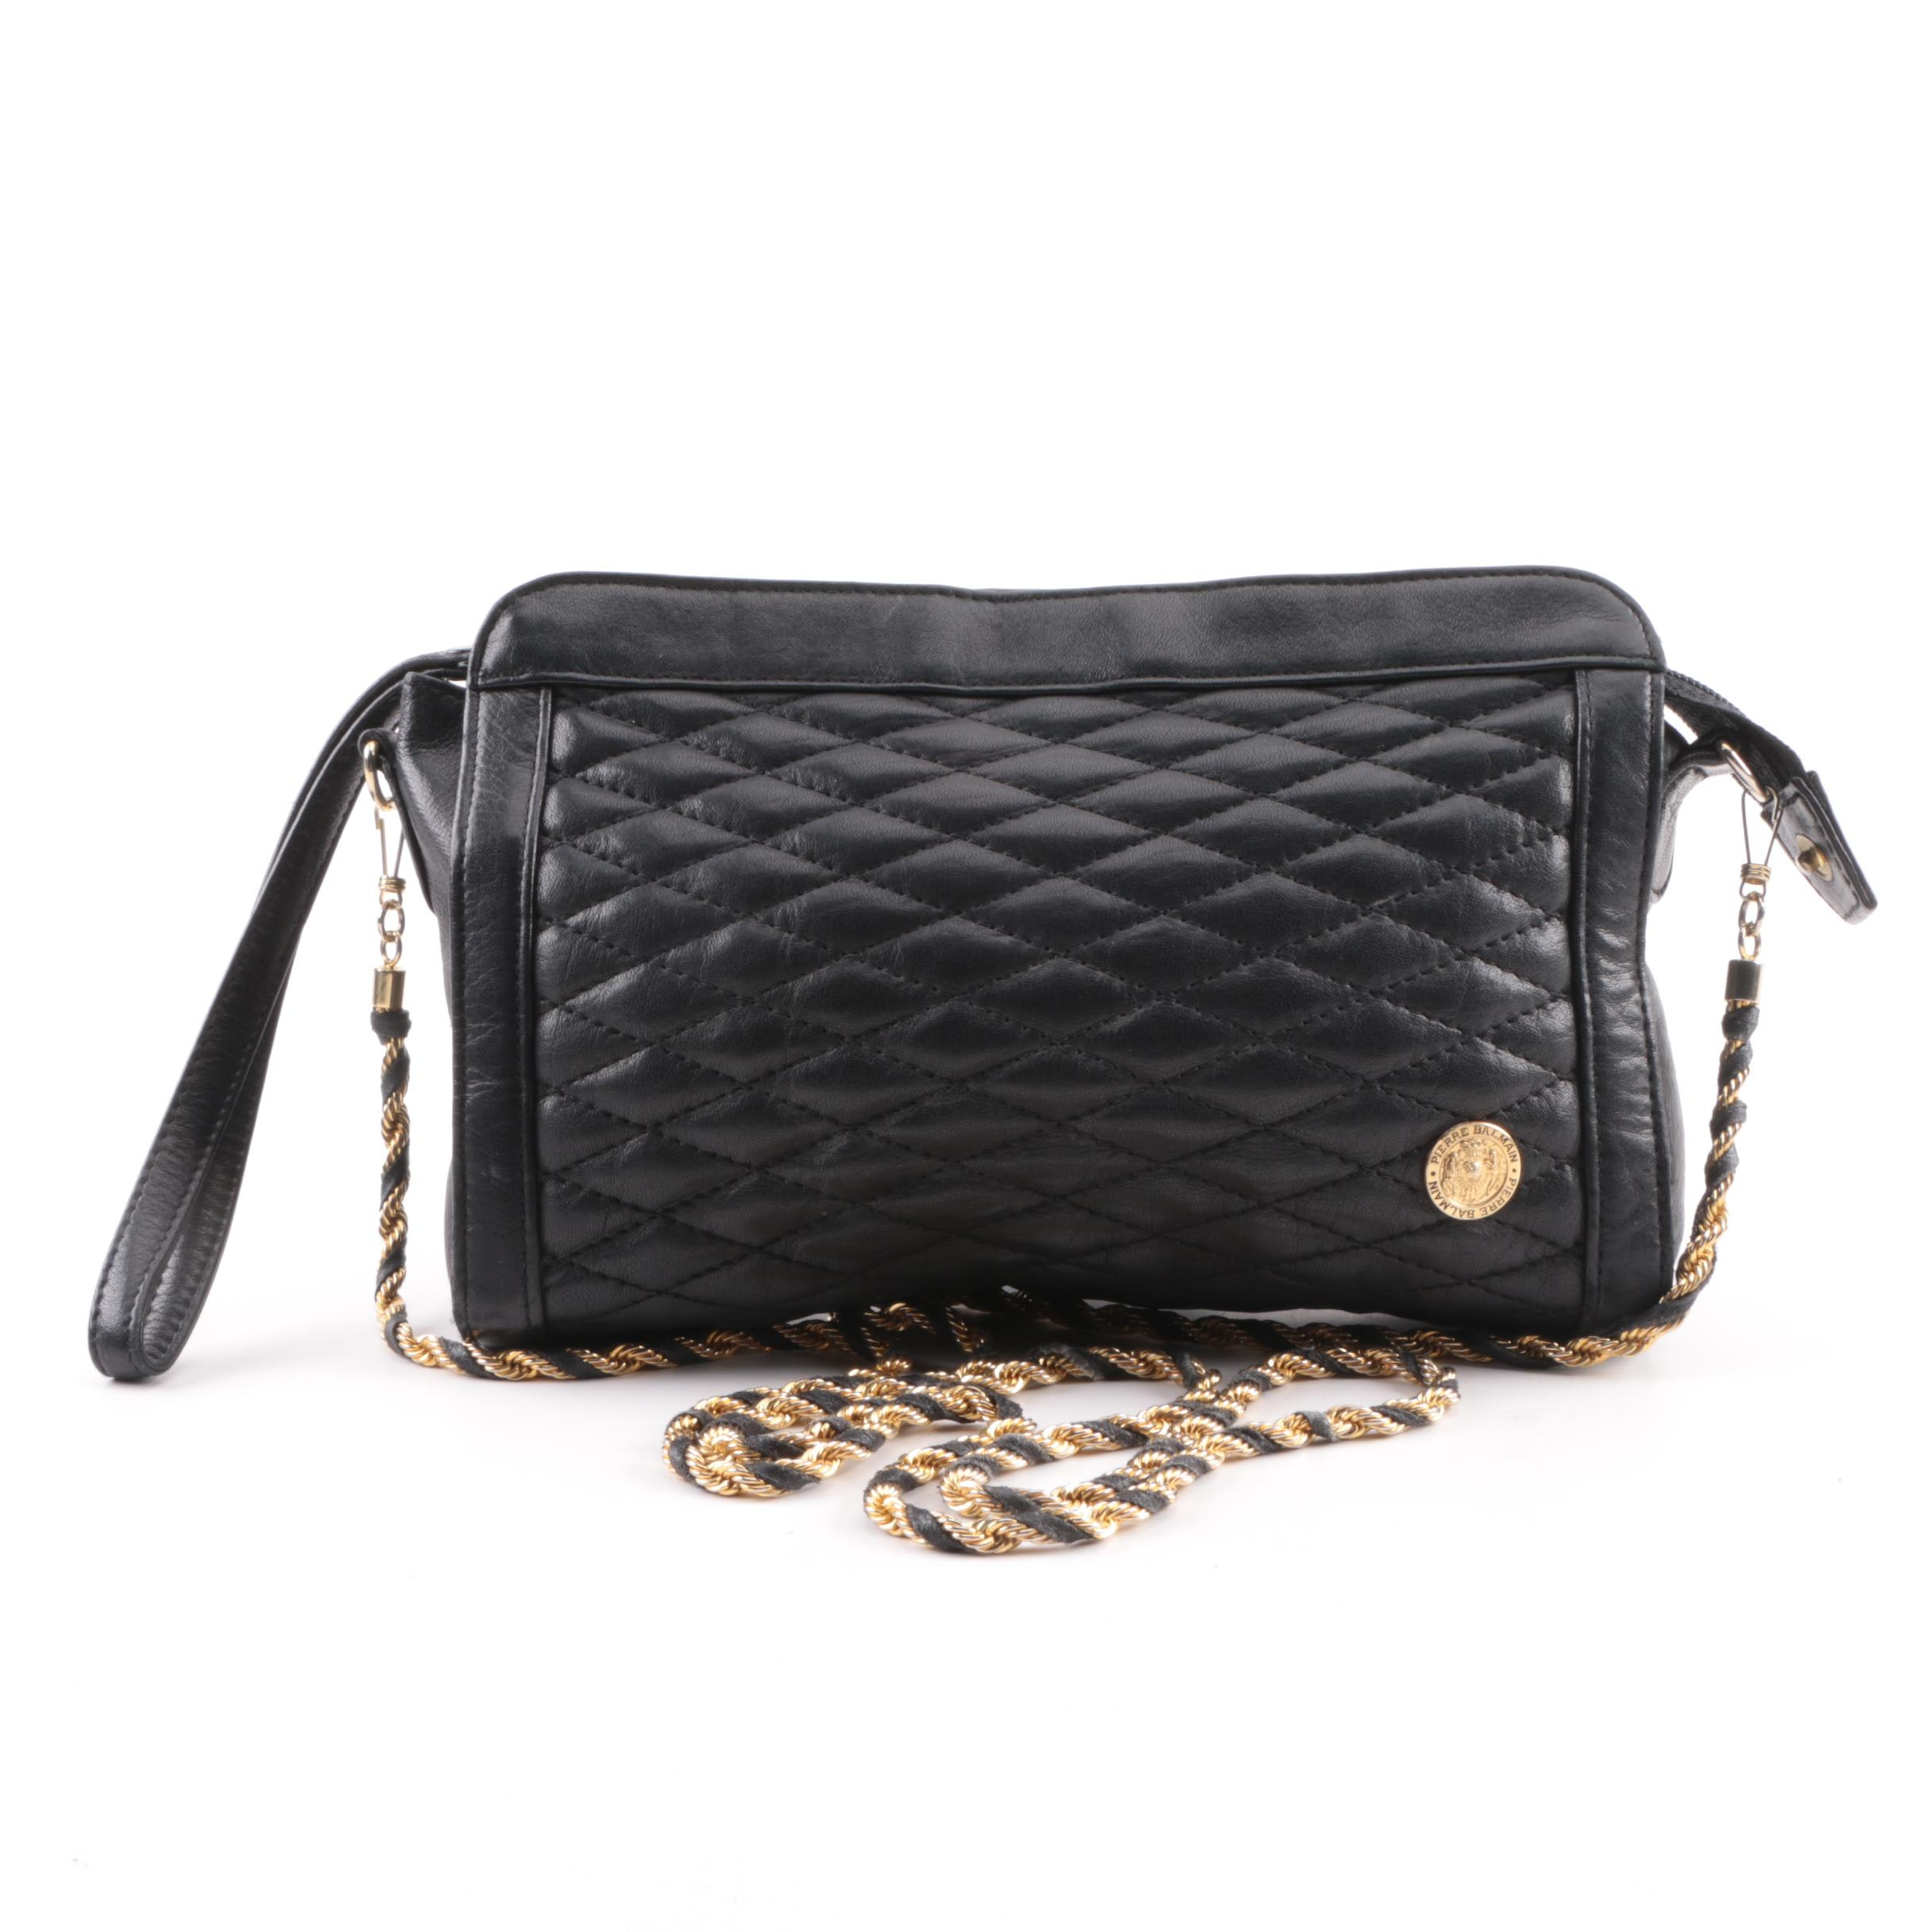 Vintage Pierre Balmain Black Quilted Leather Crossbody Bag